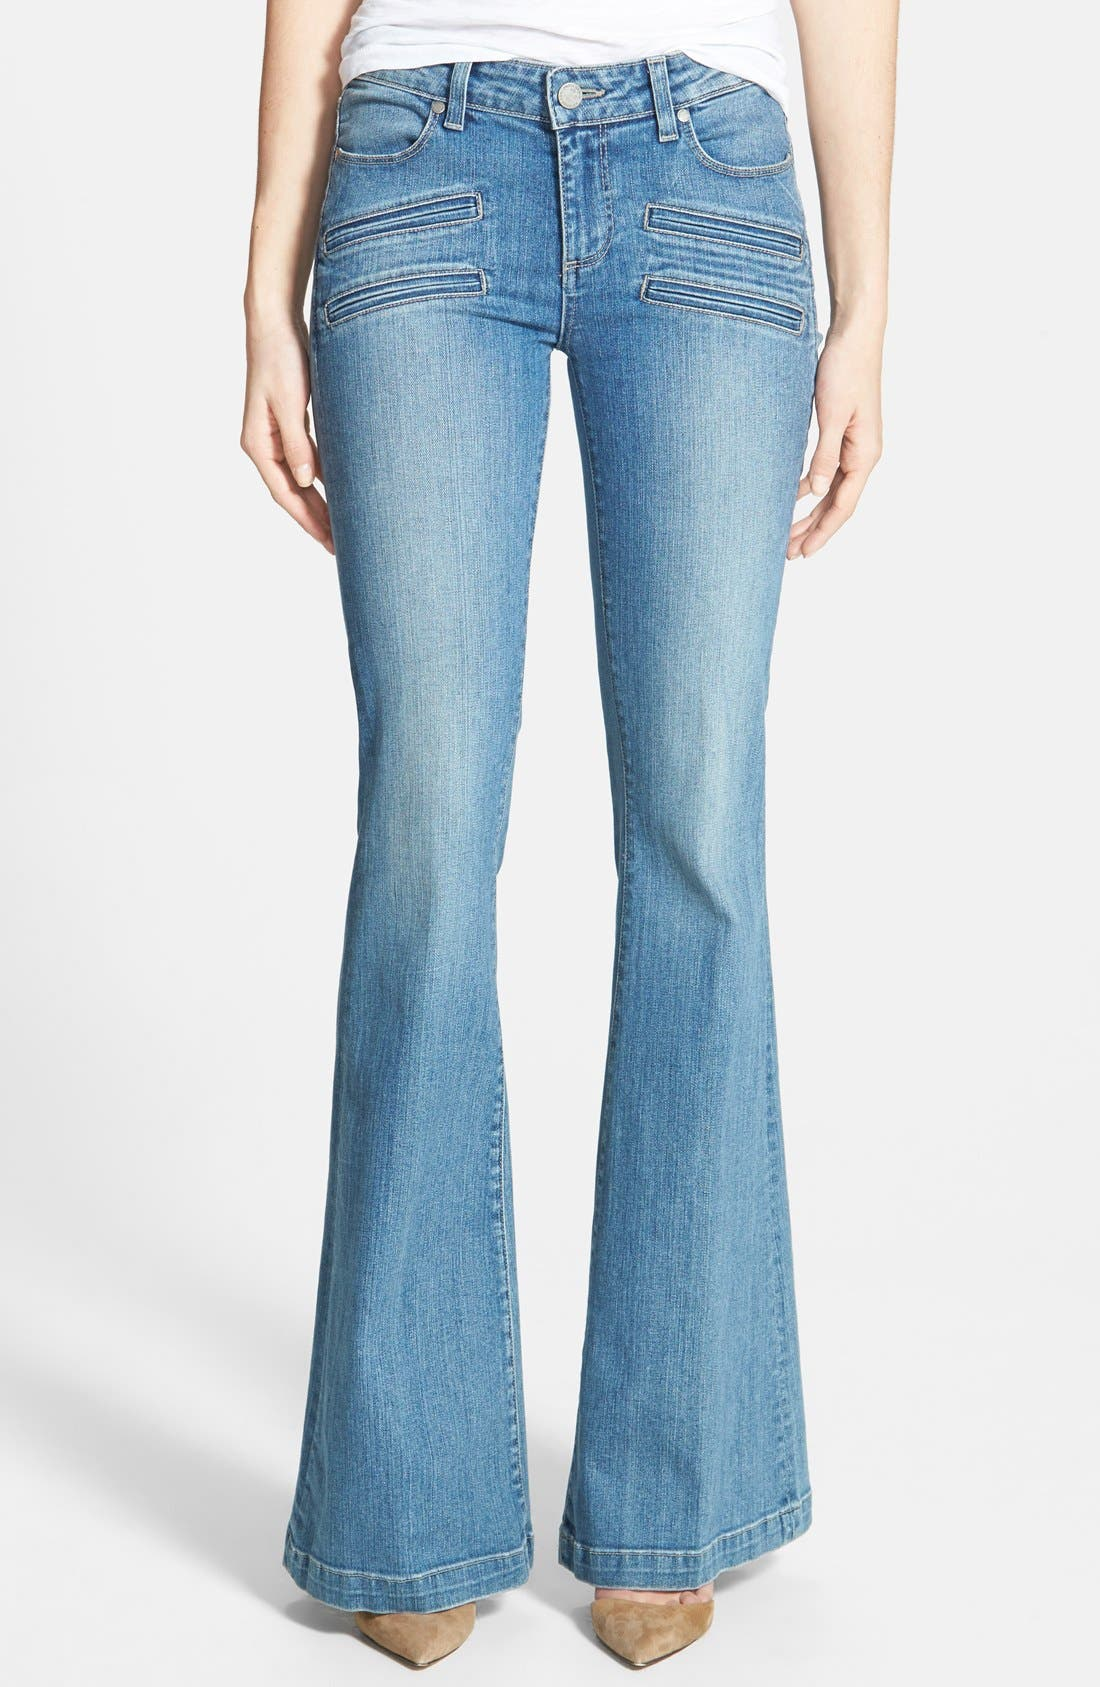 Denim 'Fionna' Flare Jeans,                         Main,                         color, Paulina No Whiskers